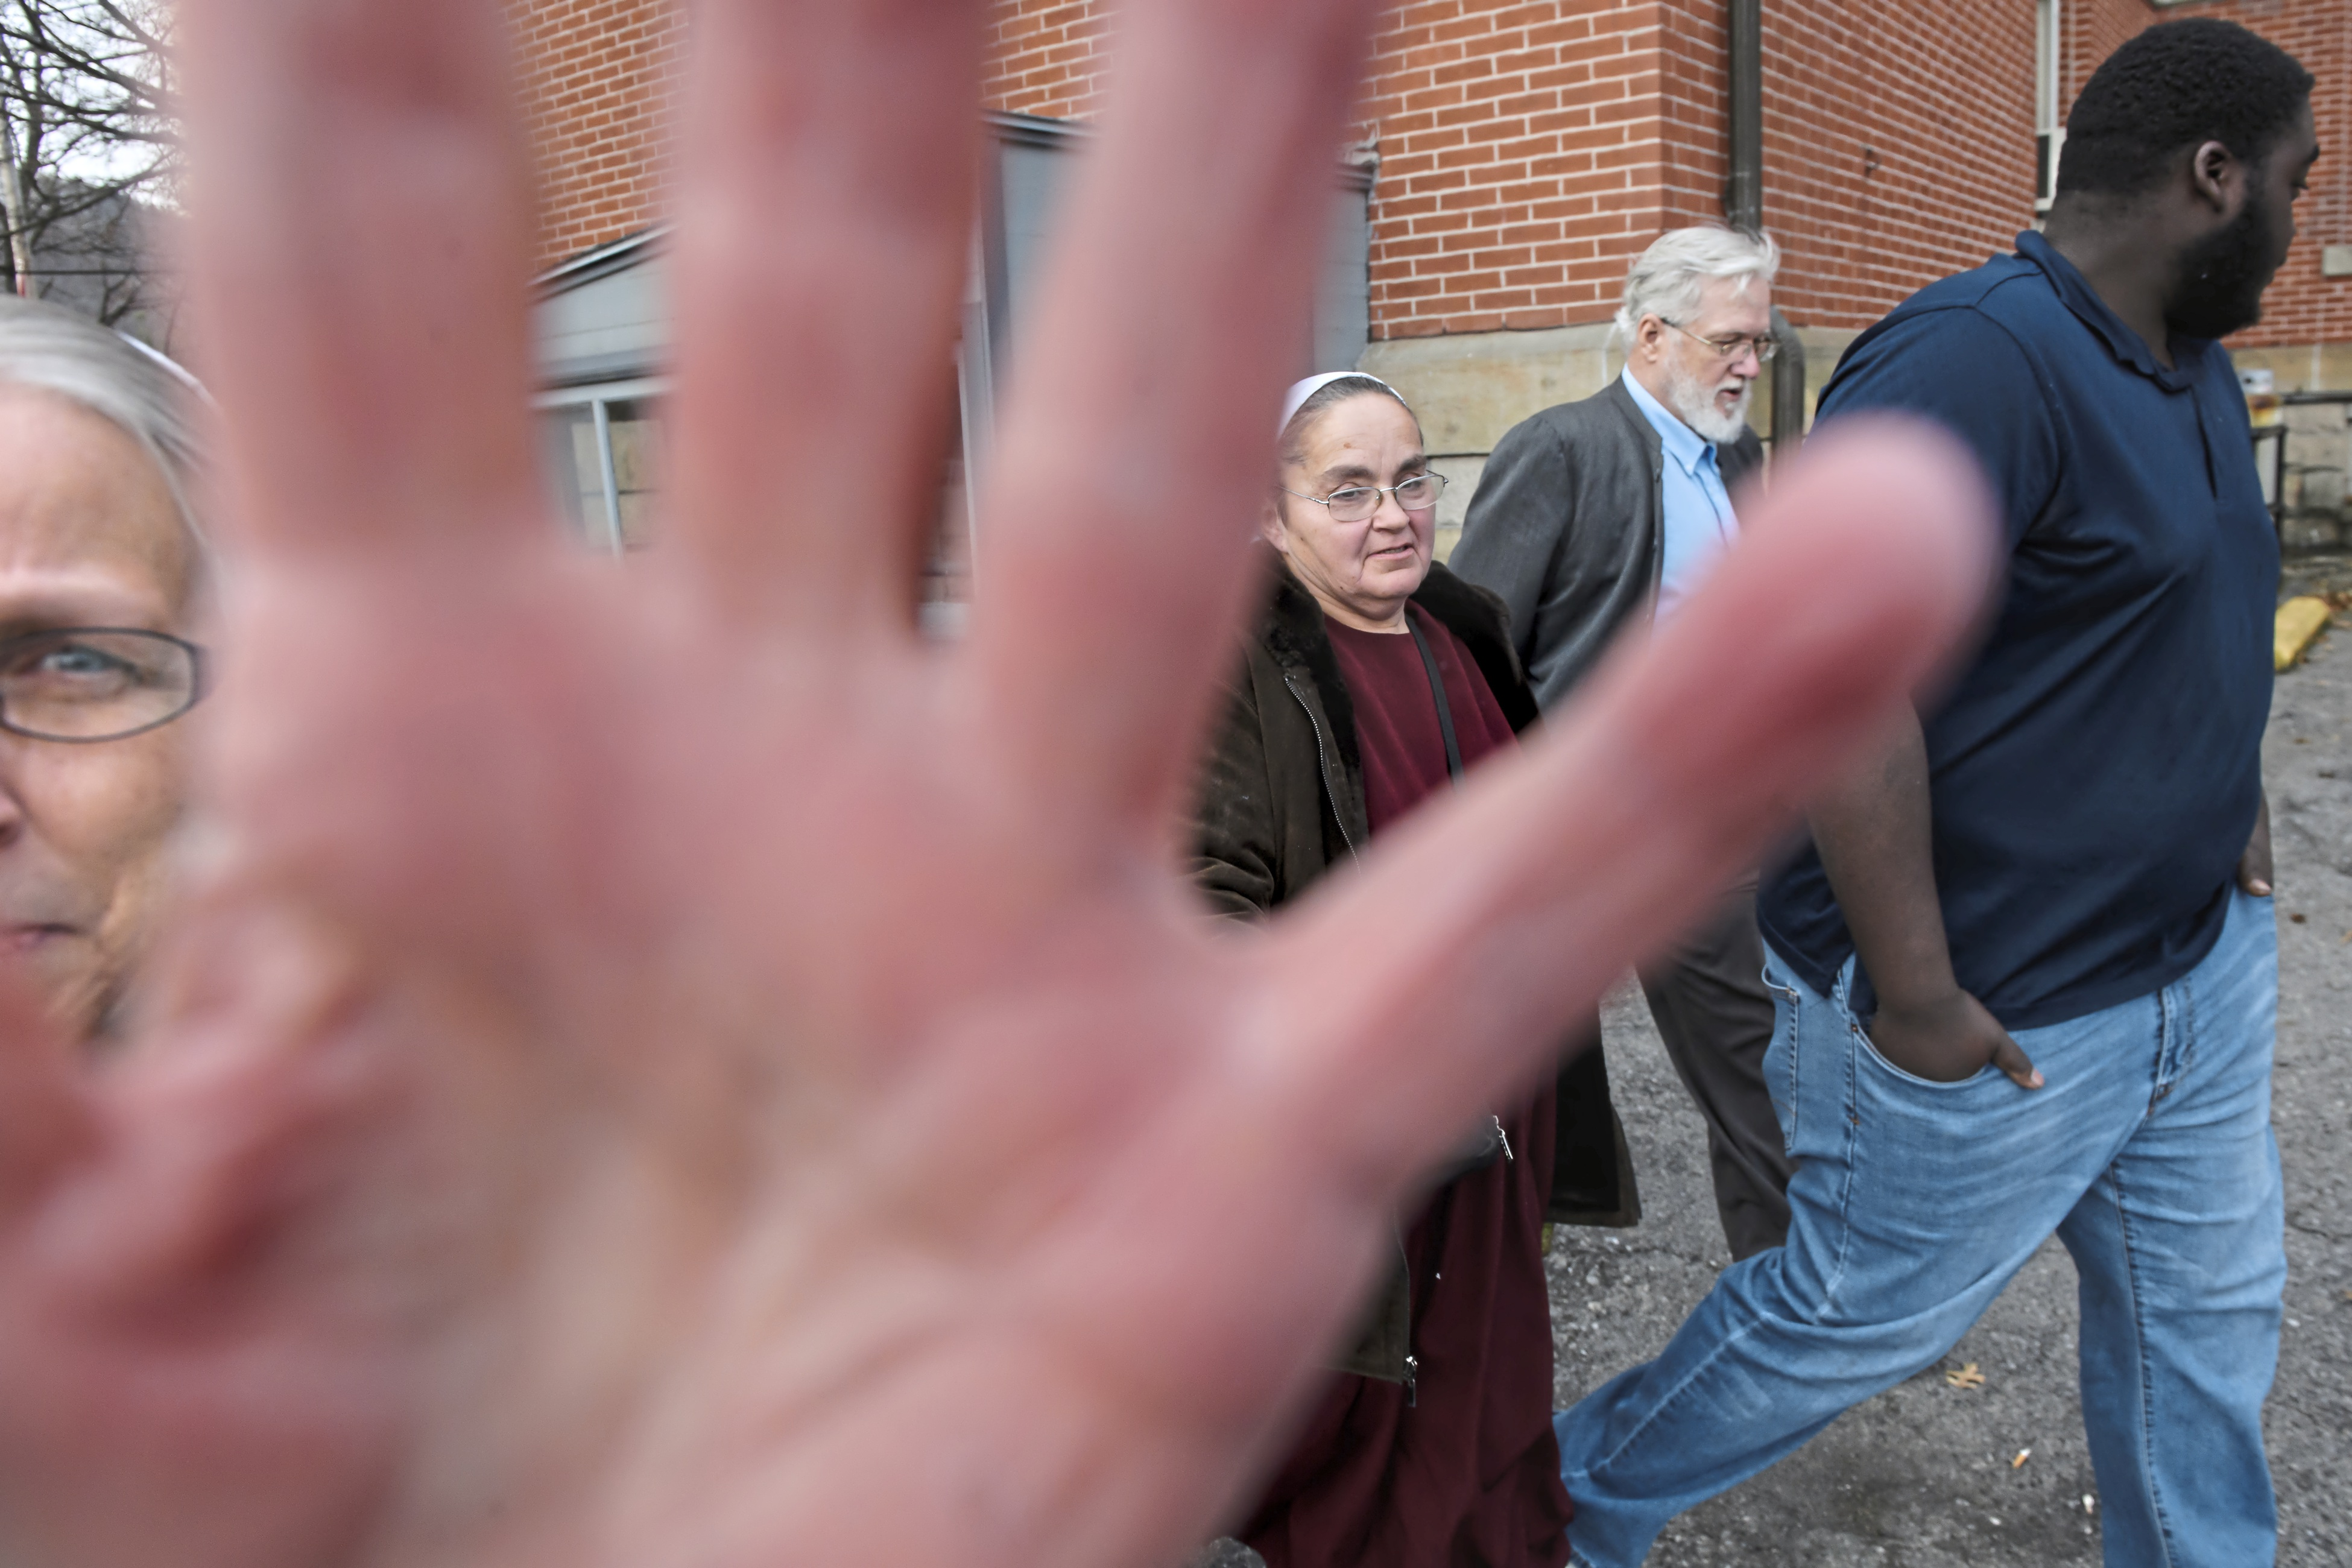 The week's best reads: Confronting abuse in Mennonite and Amish communities, a tale of two upsets and more